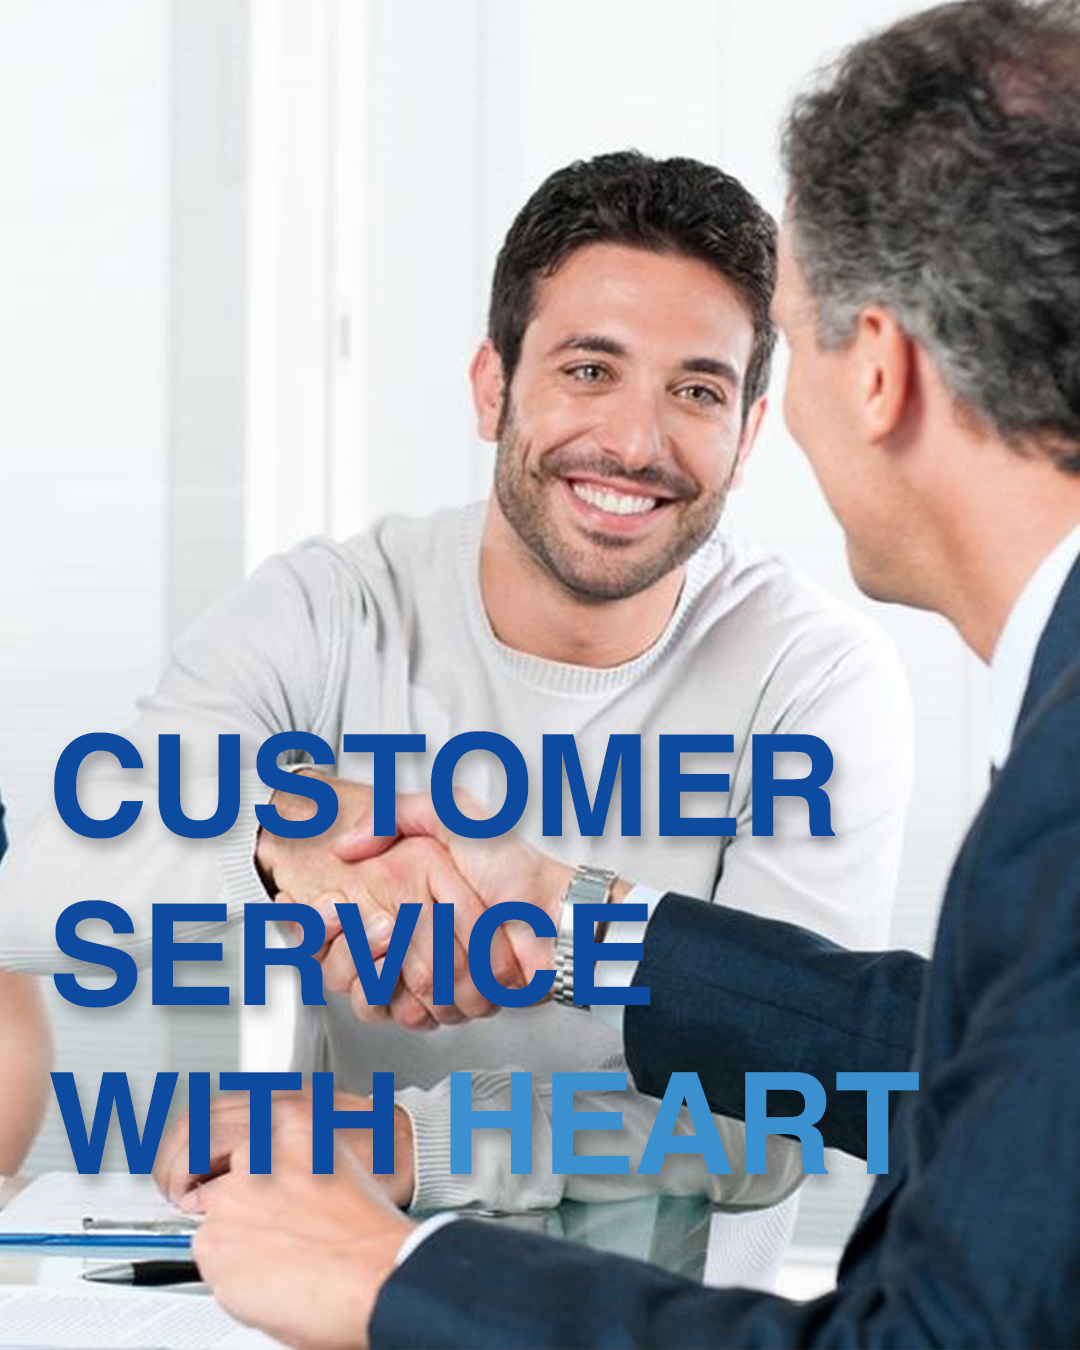 Customer Service with heart